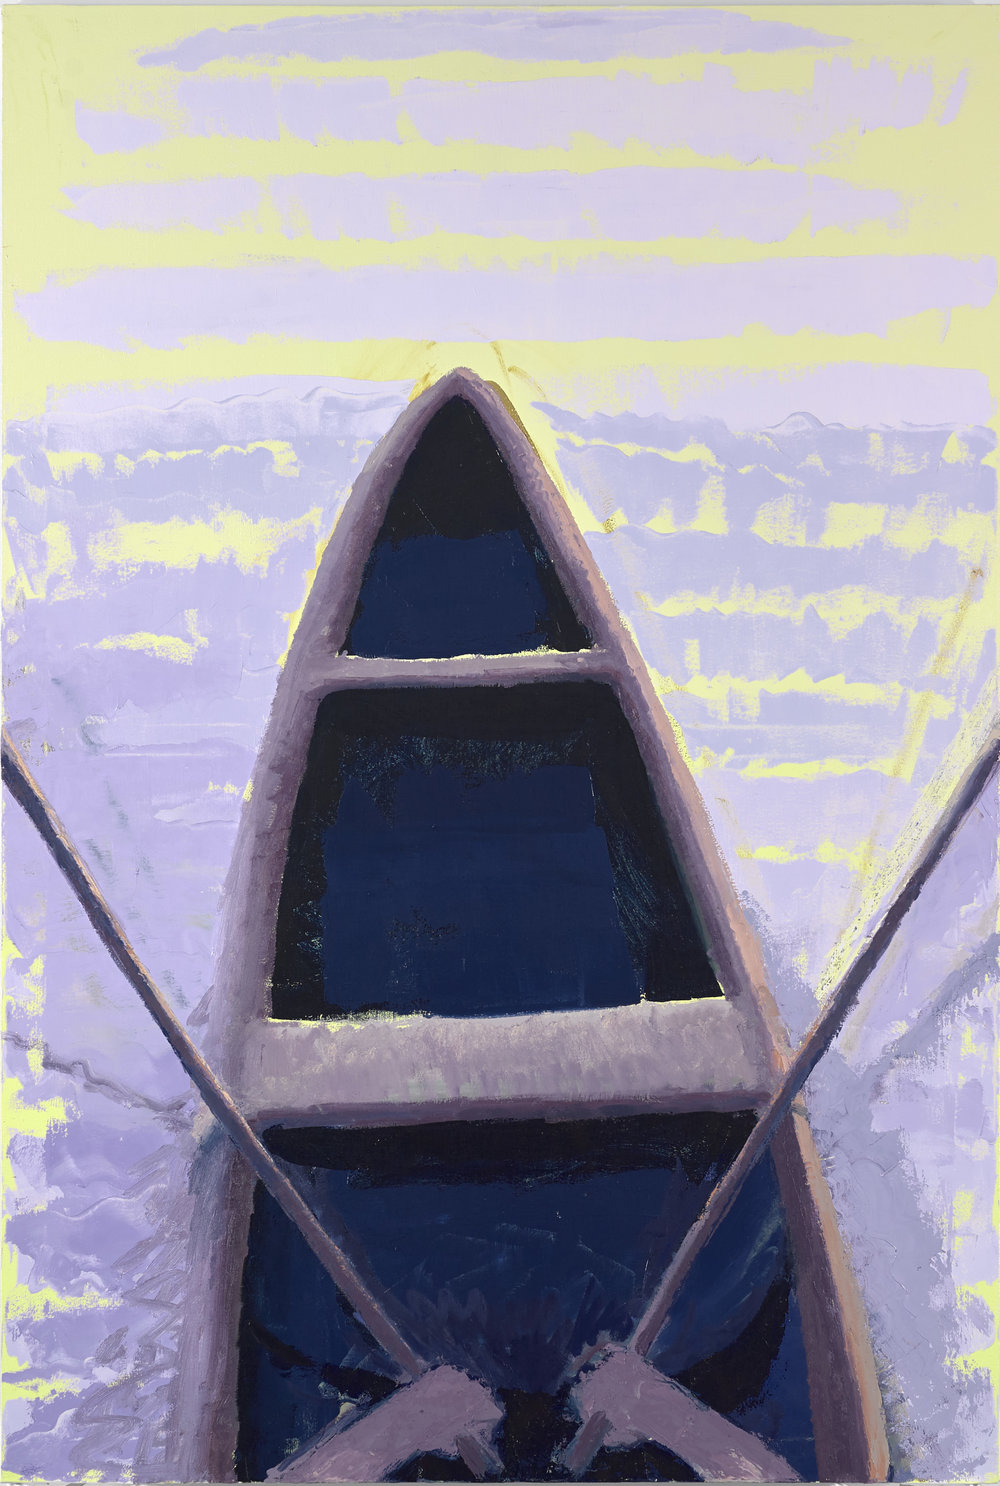 Boat, 6'x4', oil on canvas, 2019